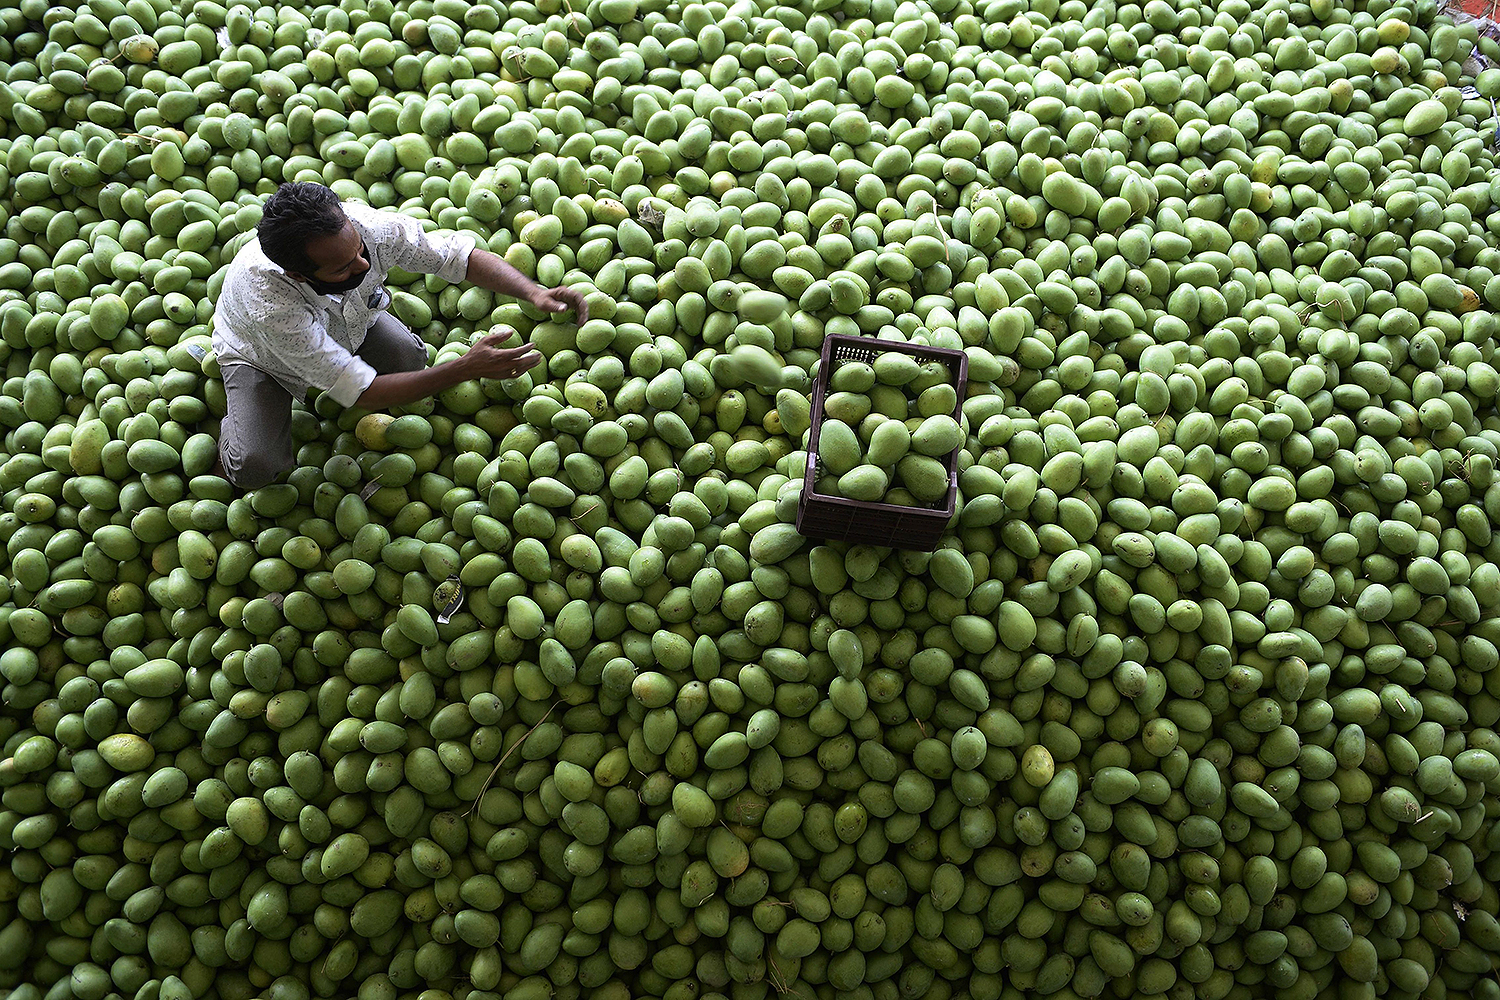 A man sorts raw mangoes at the Gaddiannaram fruit market on the outskirts of Hyderabad, India, on April 16. NOAH SEELAM/AFP via Getty Images